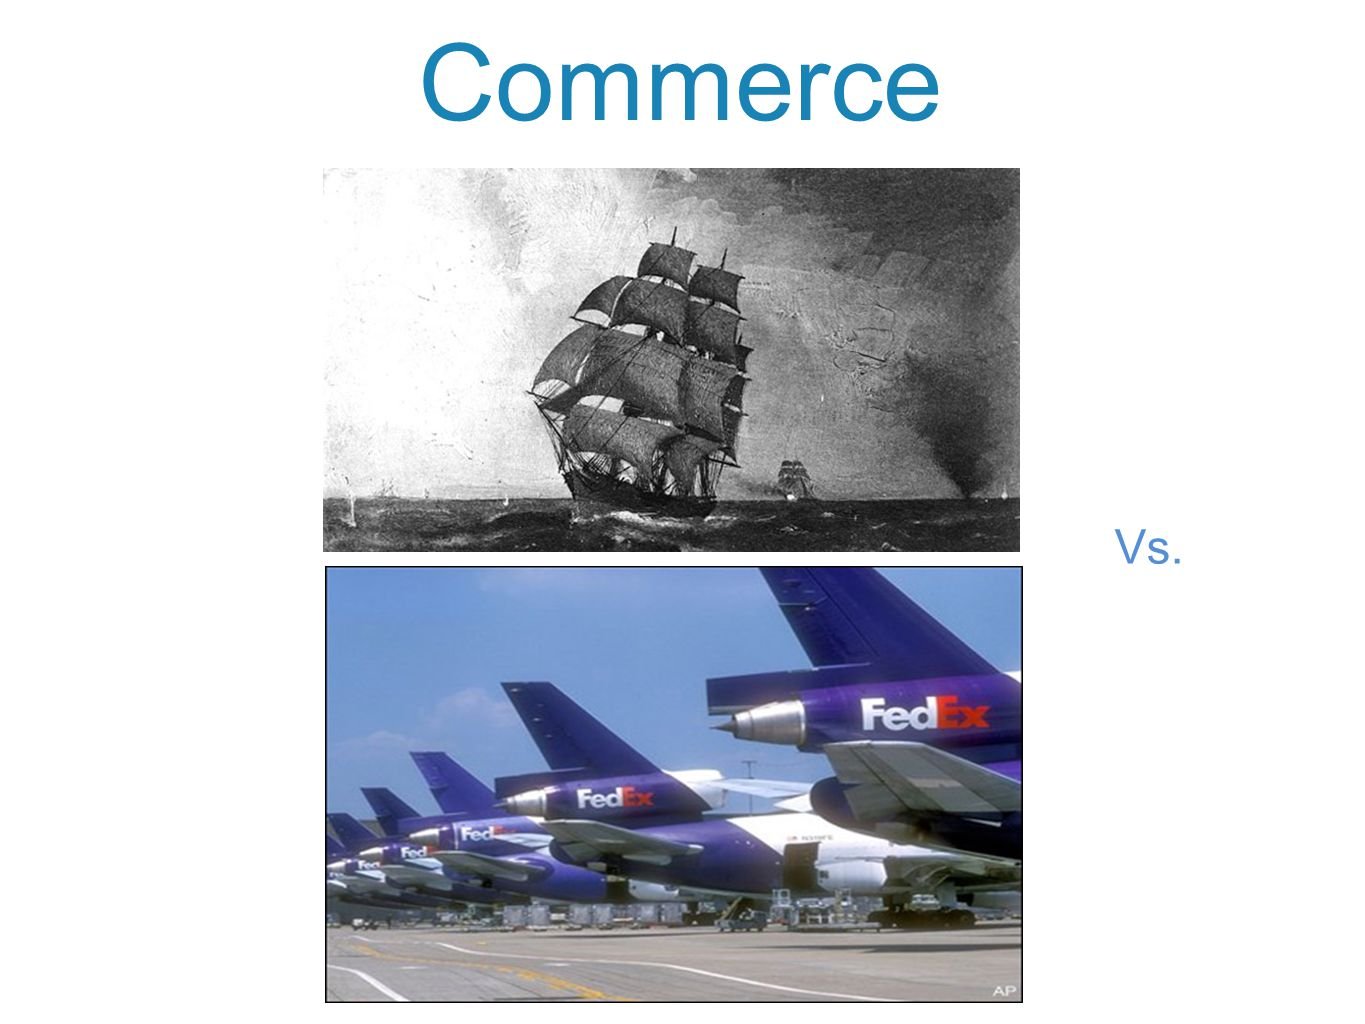 Commerce Vs.